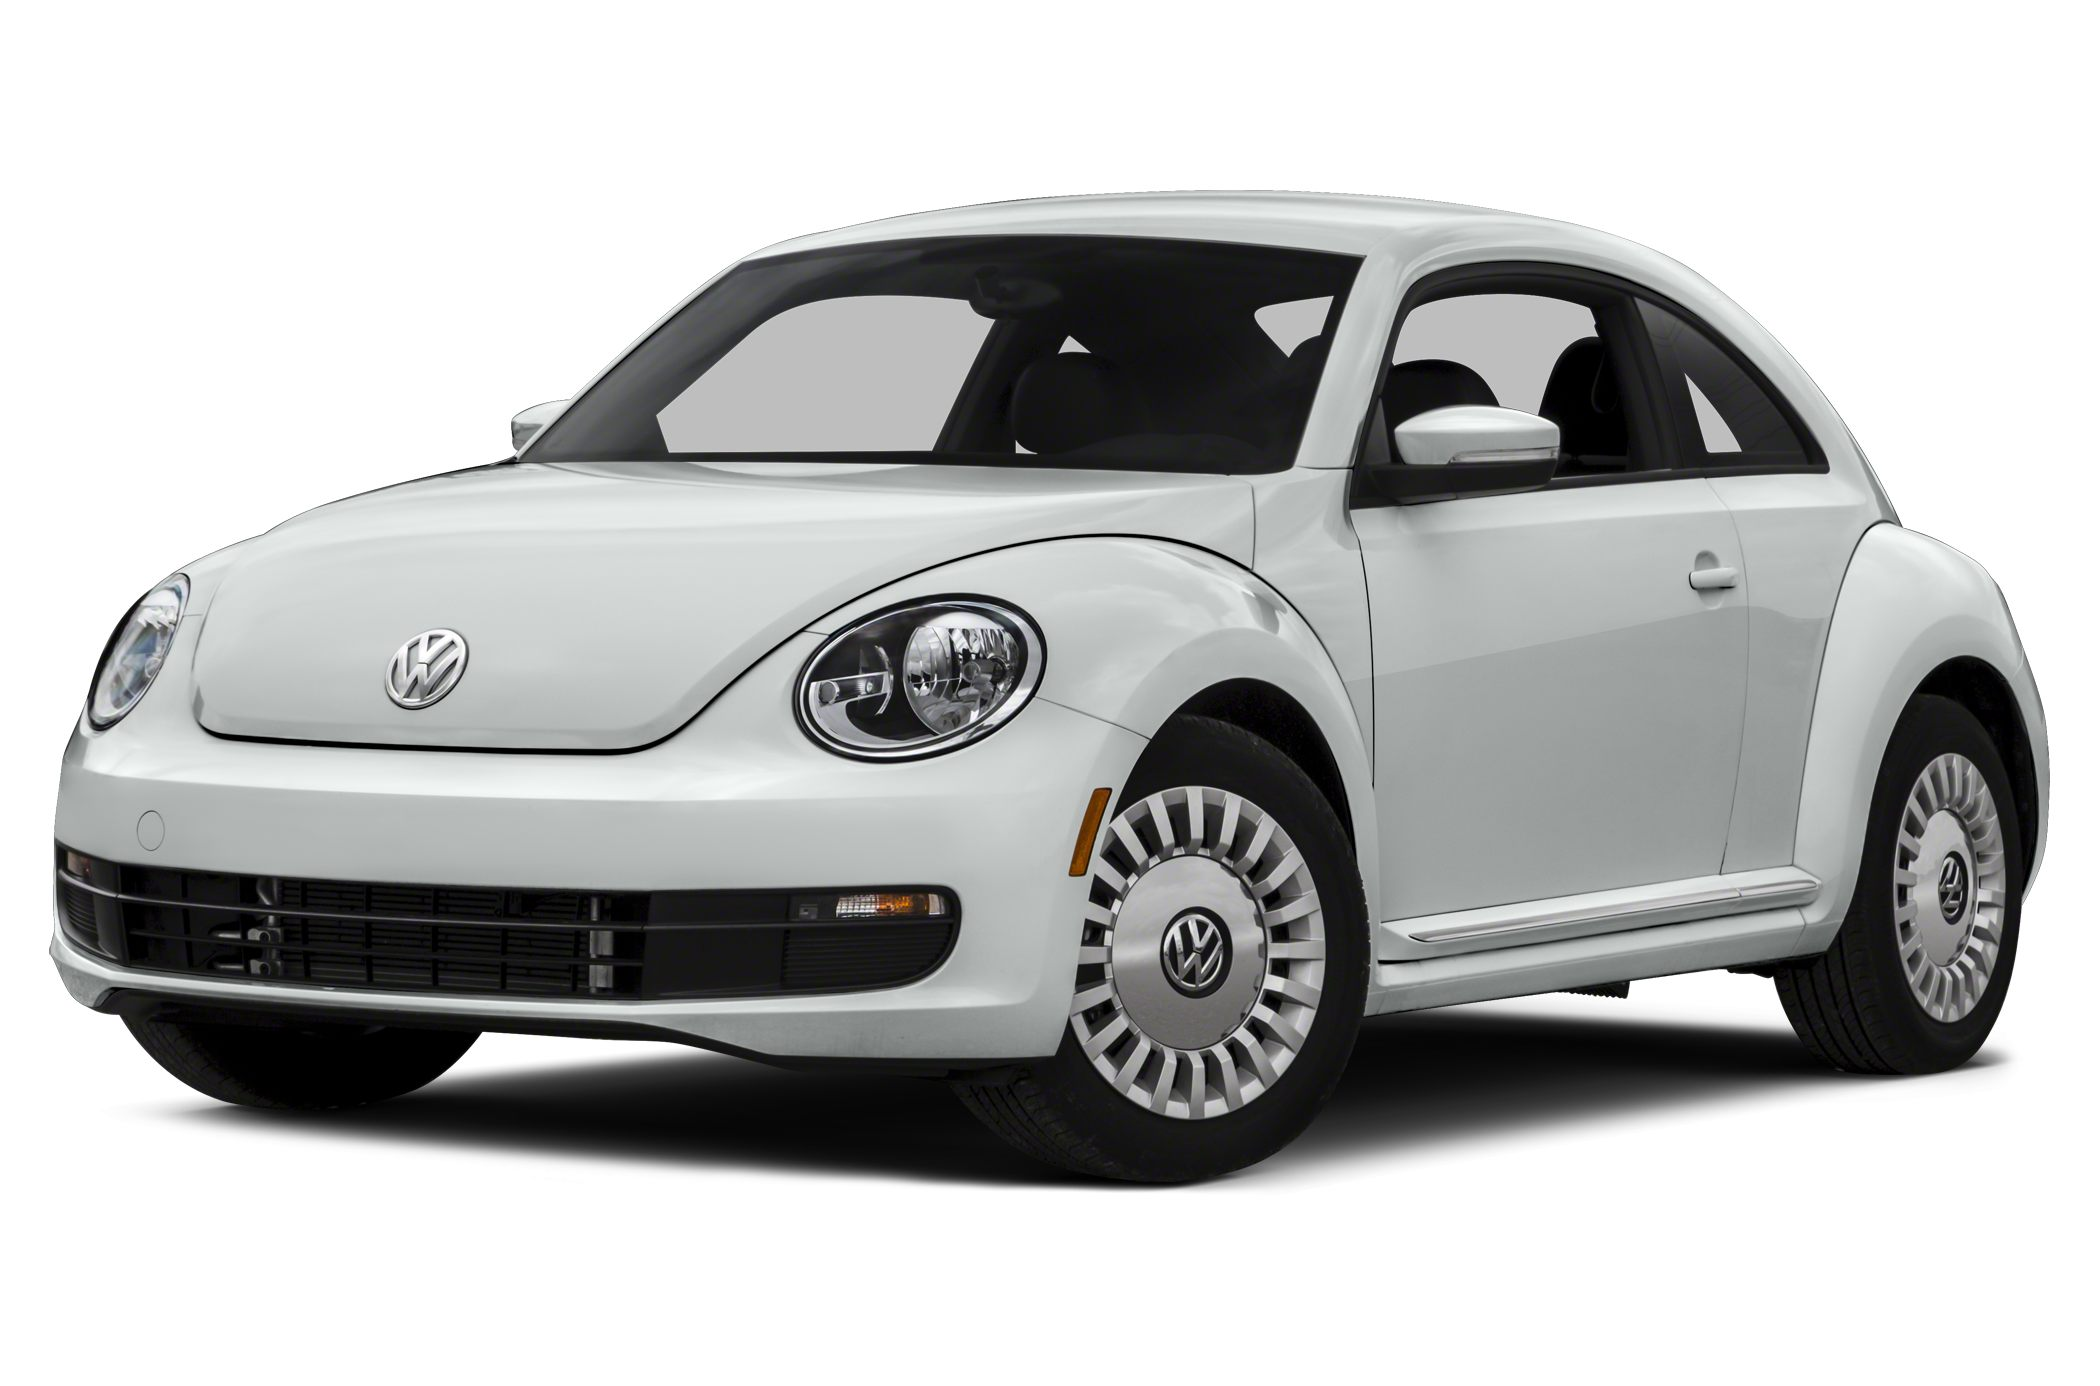 recharge wrap up vw beetle ev epa could allow higher. Black Bedroom Furniture Sets. Home Design Ideas